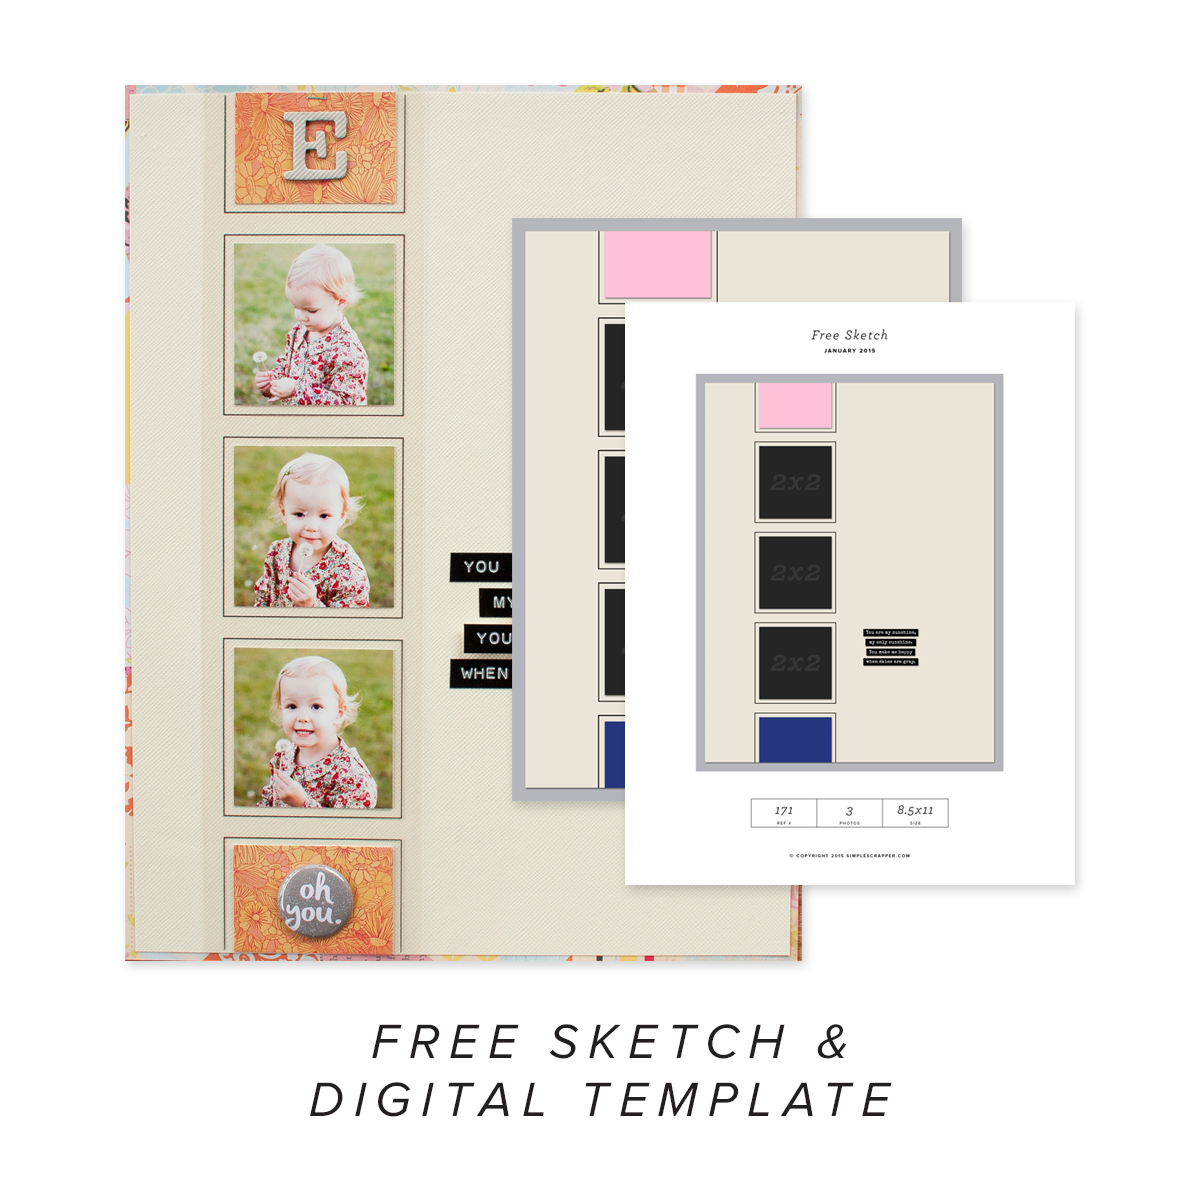 September Free Sketch & Template